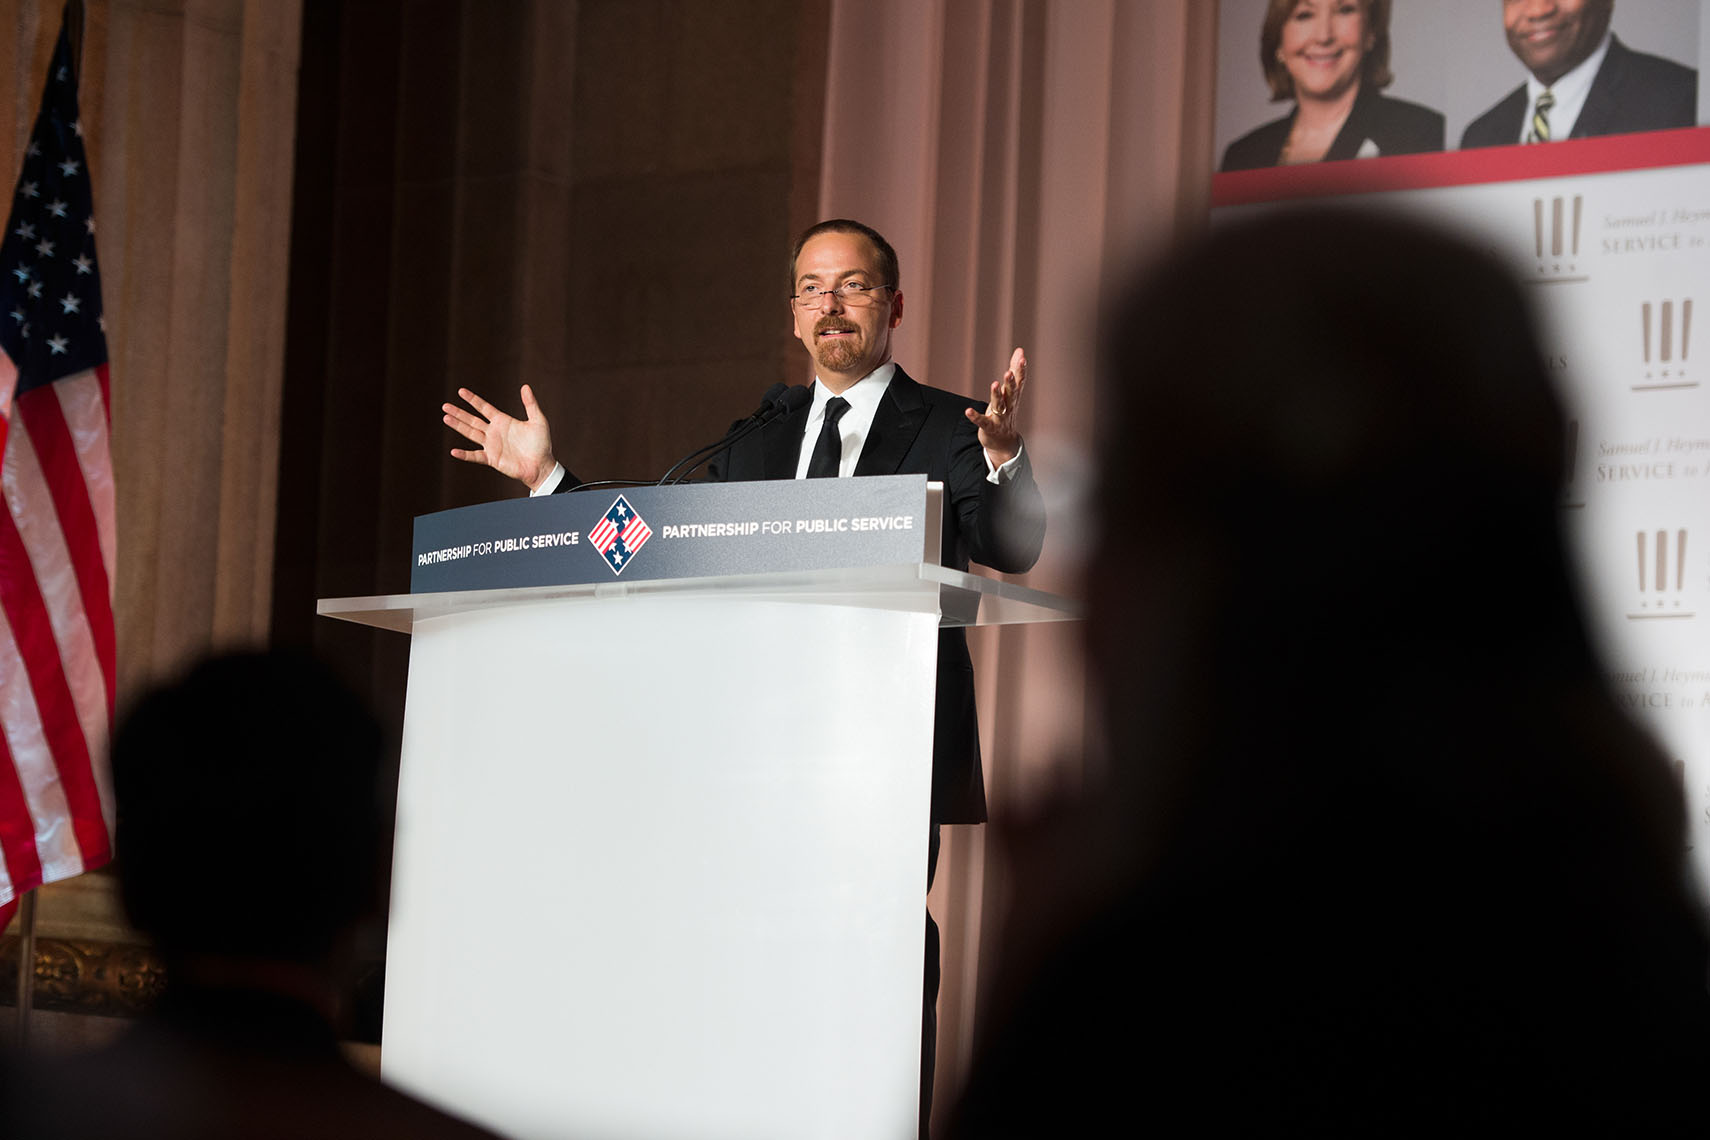 Chuck Todd, at the Sammies Gala 2016